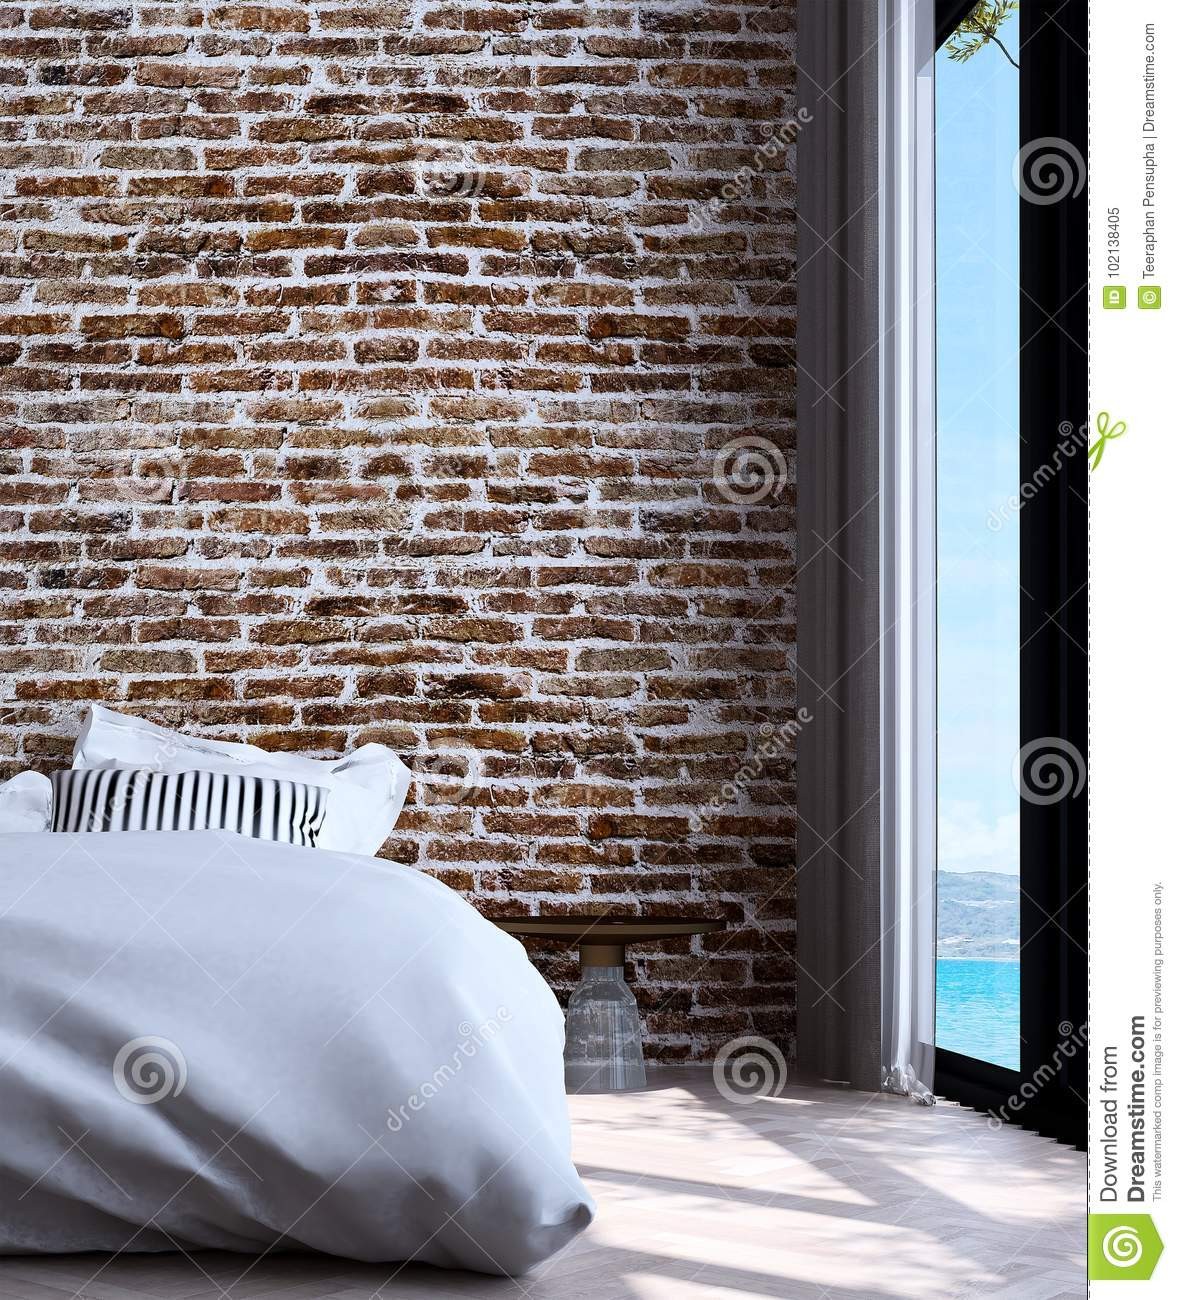 The Modern Minimal Bedroom Interior Design And Red Brick Wall